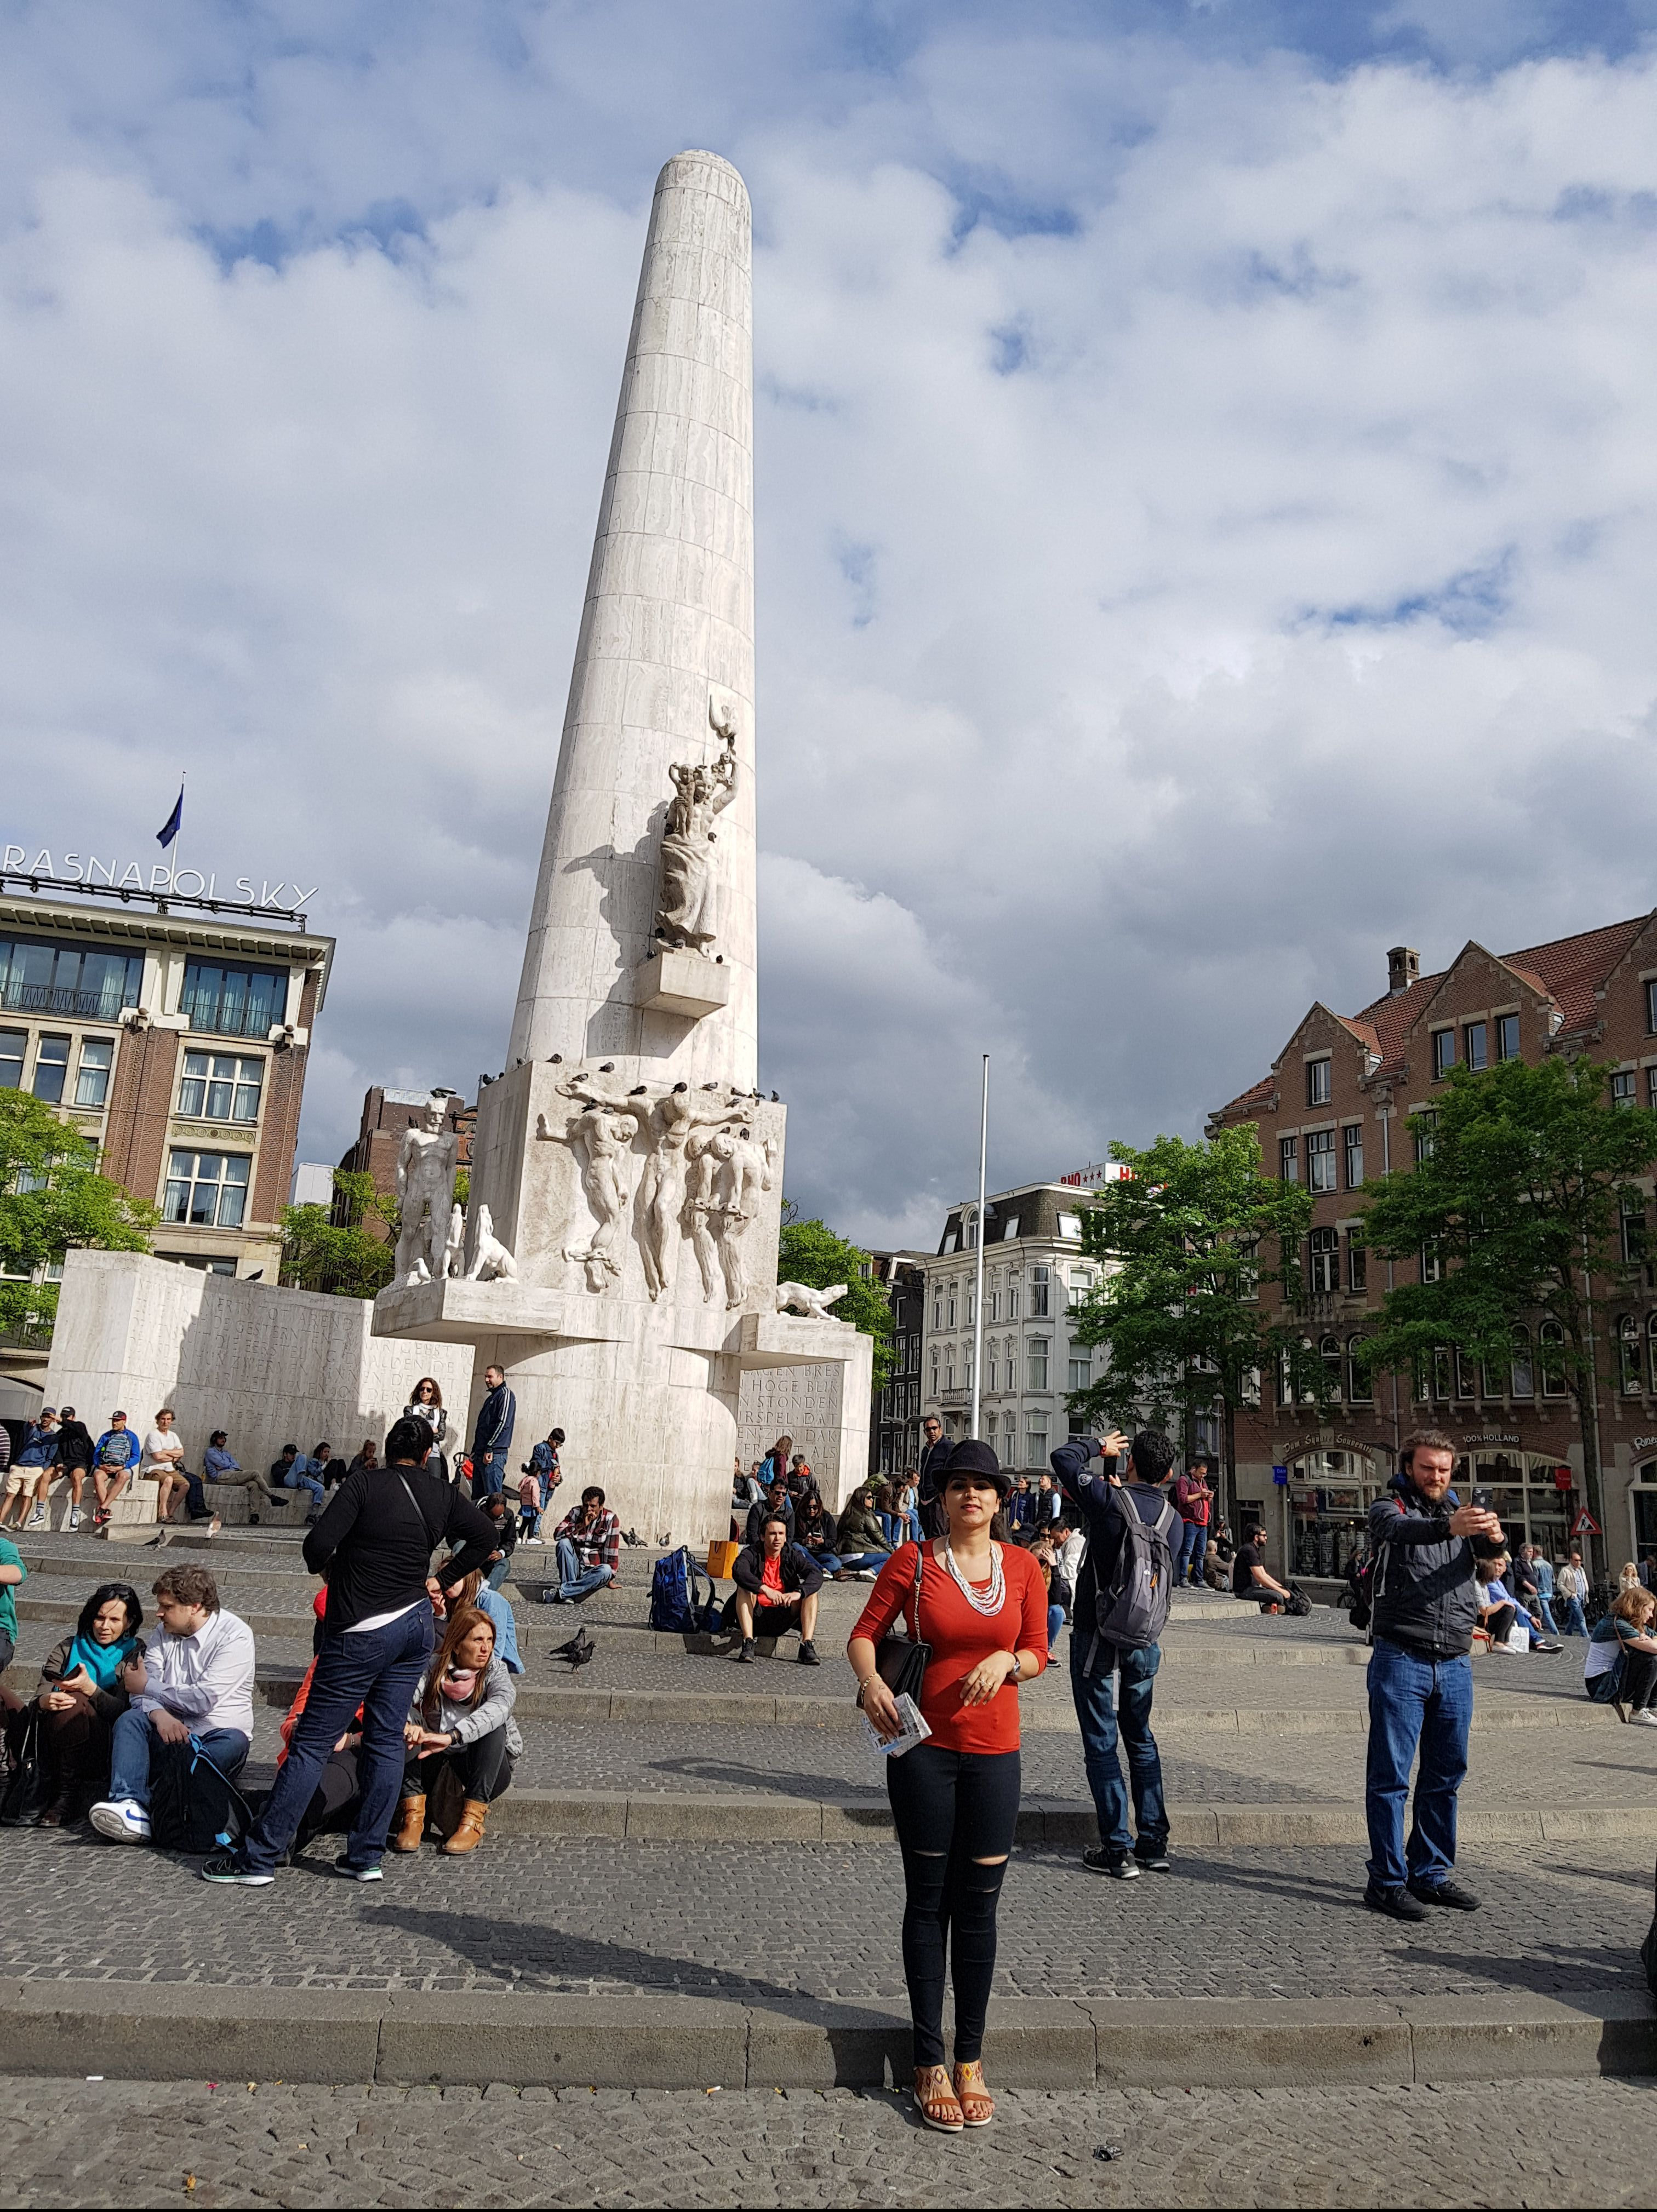 The Nationa Monument, Amsterdam